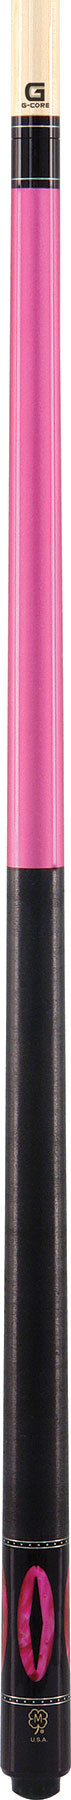 McDermott G215 G-Series Pink Pool Cue